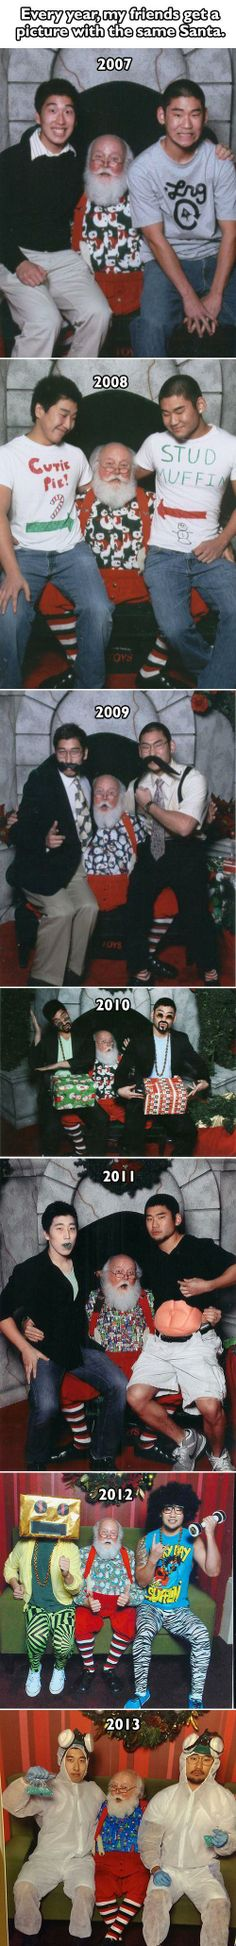 Epic friends with an awesome Santa through the years.